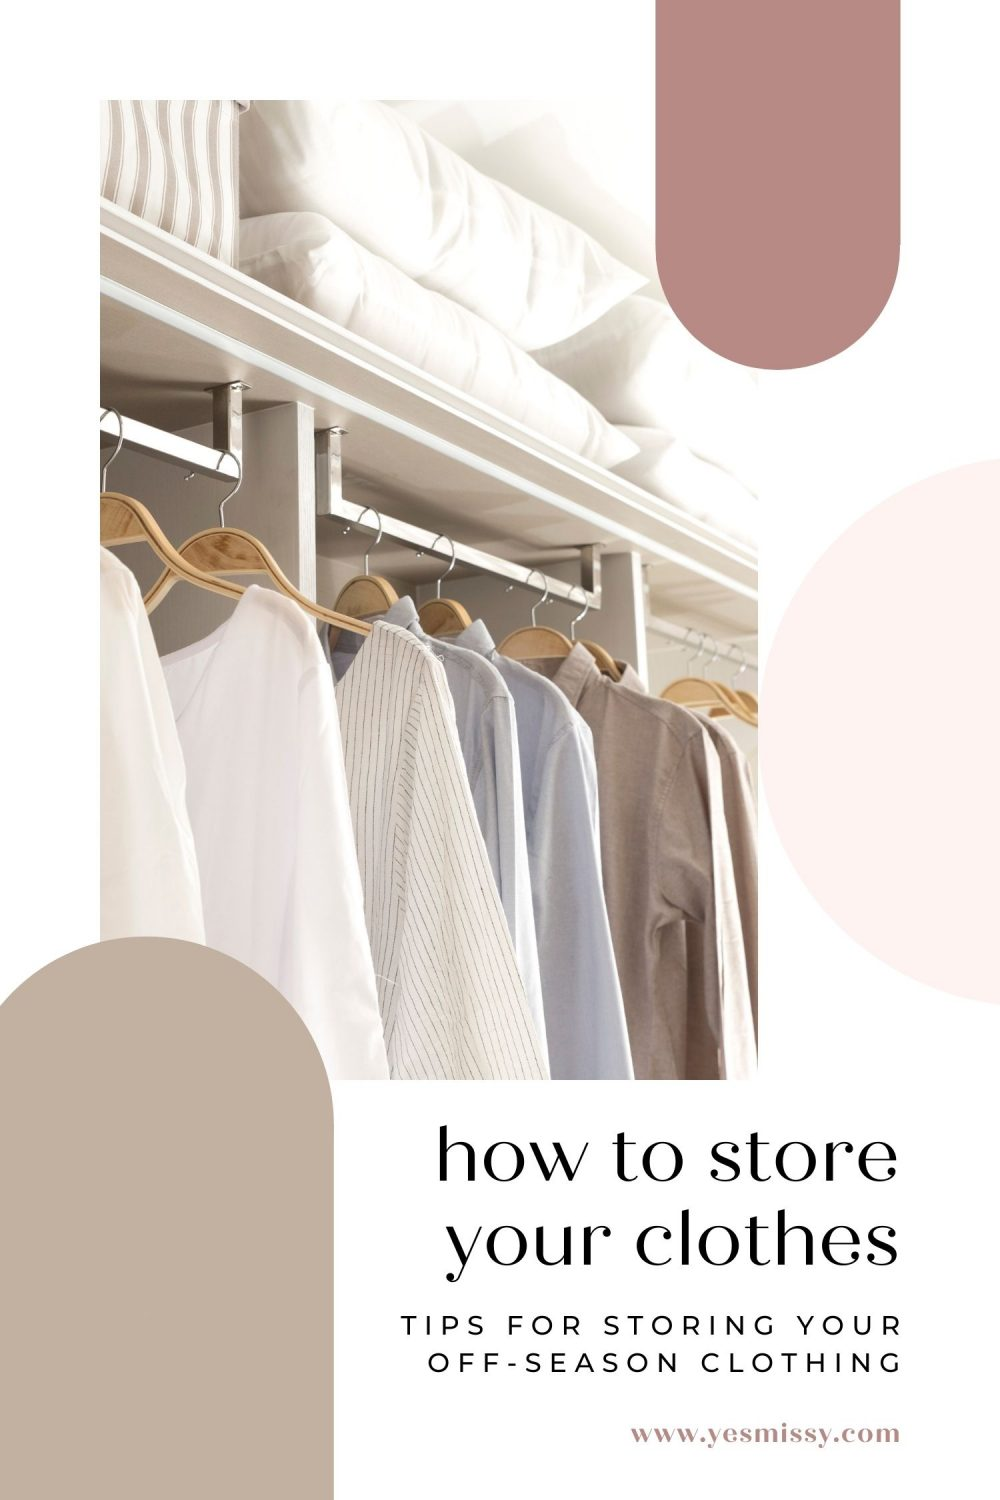 Make more room in your closet by storing clothes that are off season. Following these 6 easy tips on yesmissy.com